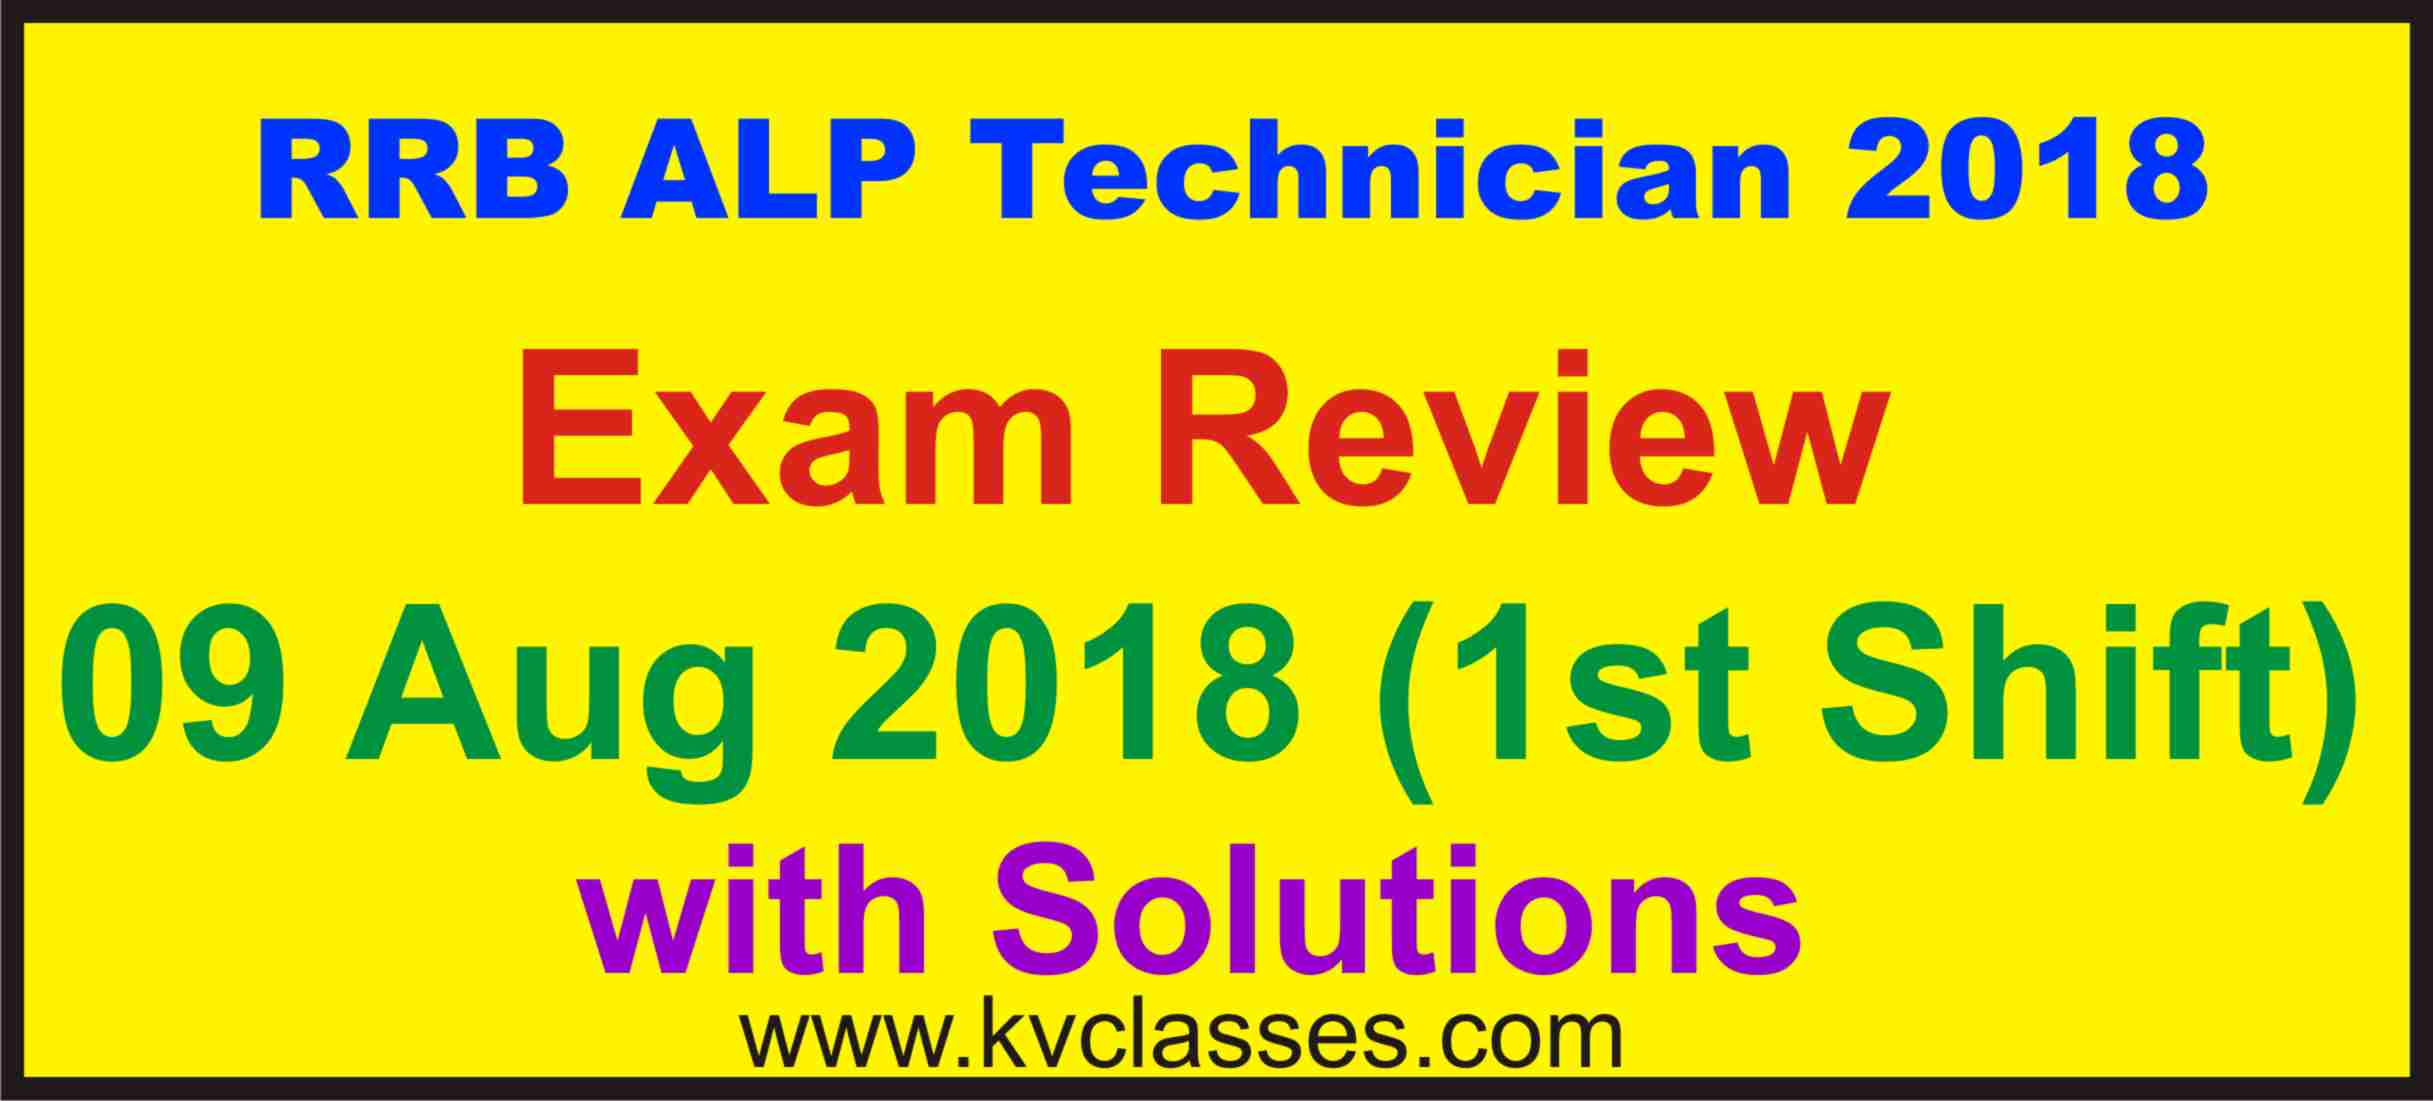 RRB ALP Technician Exam Review & Analysis 1st Shift [ 8 Aug 2018 ]